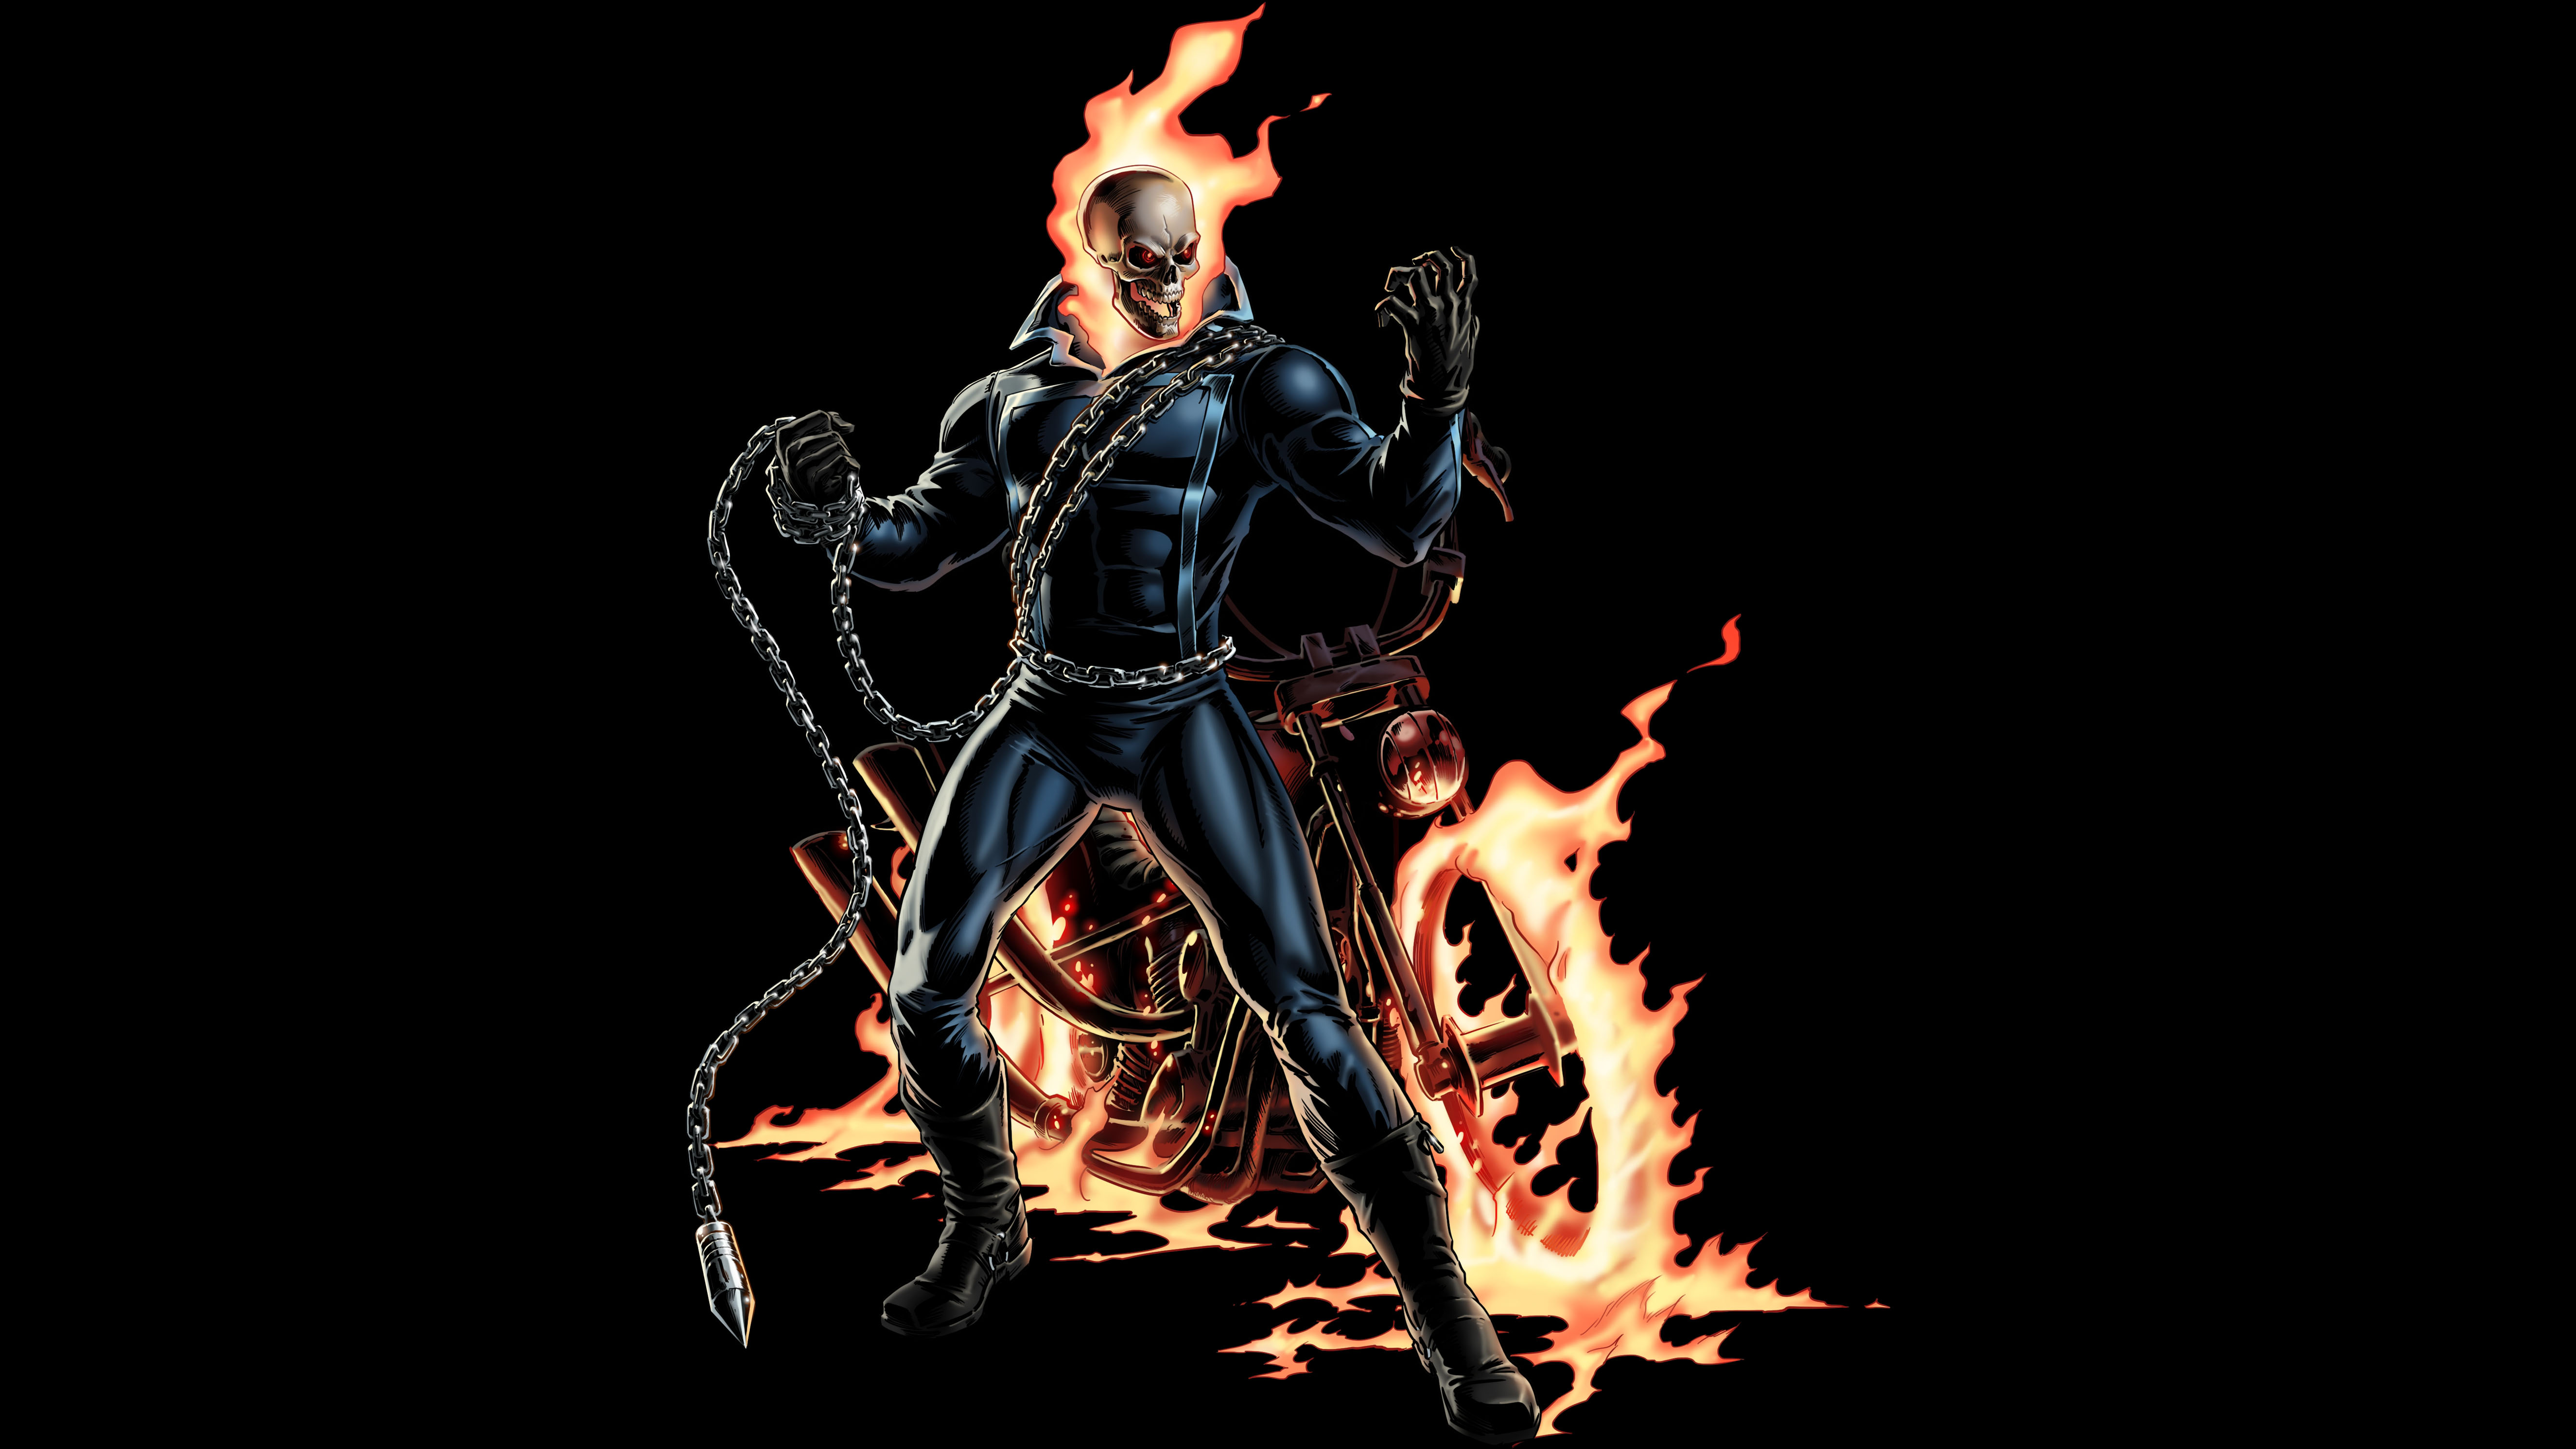 Ghost Rider Wallpaper Hd 125 ghost rider hd wallpapers backgrounds ...